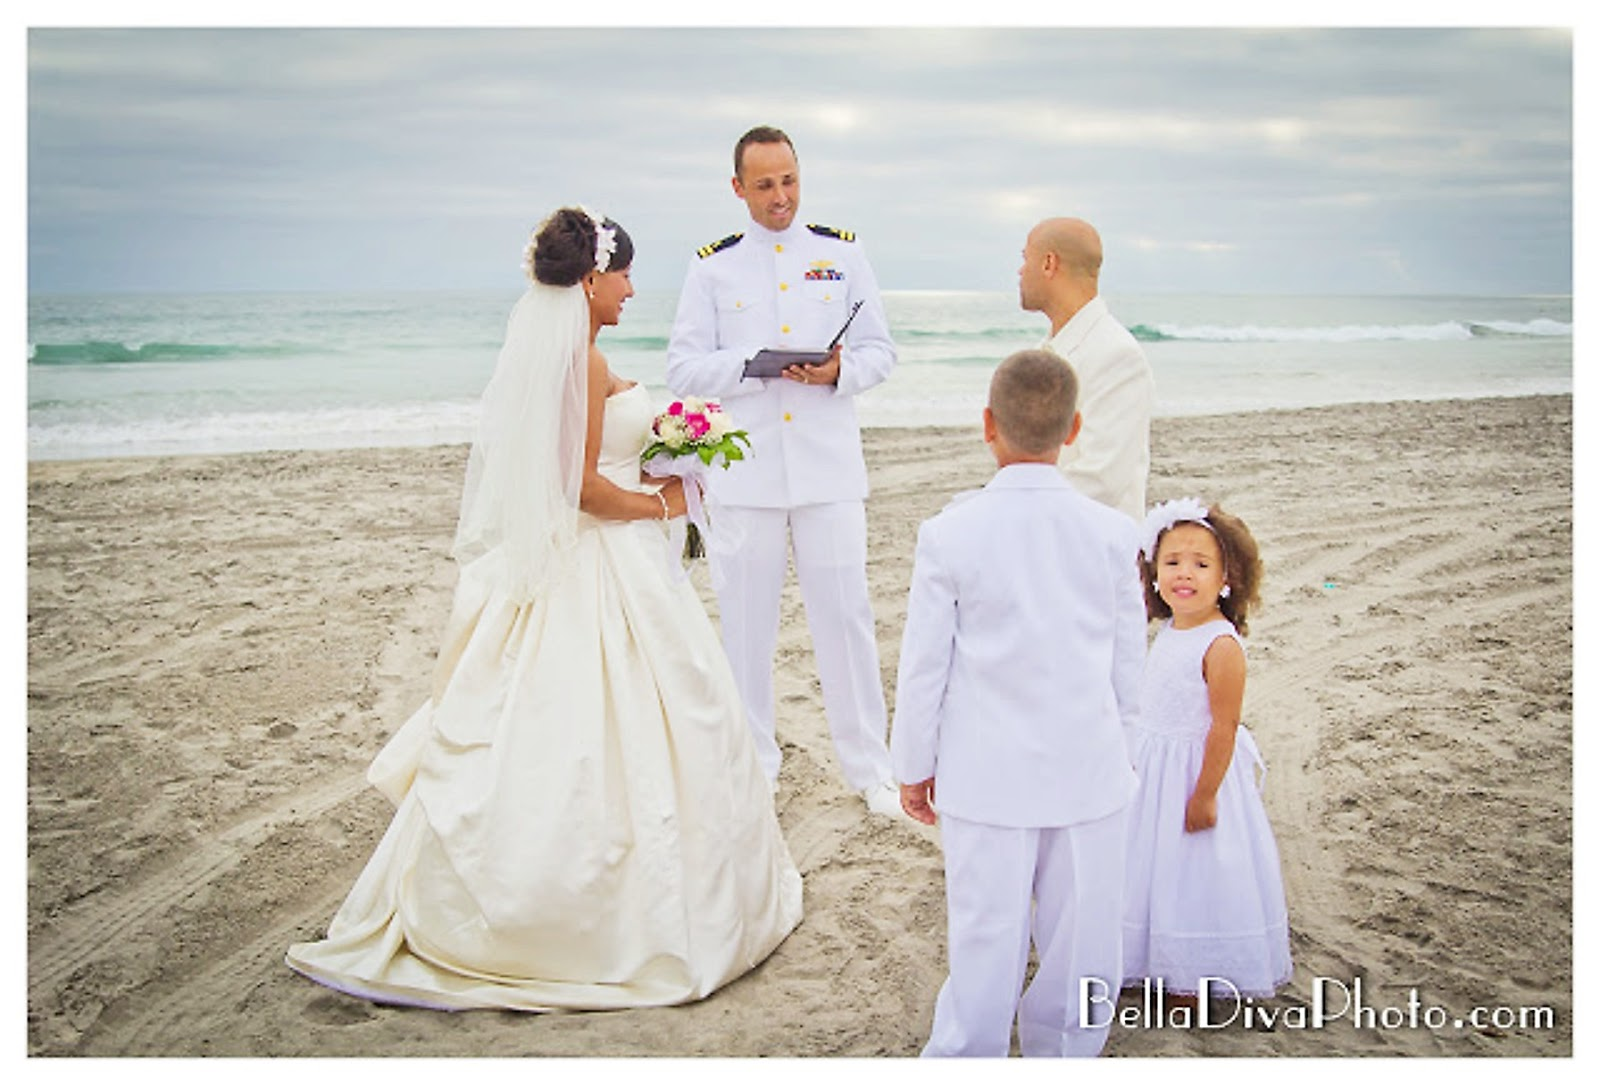 Beach Vow Renewal Ceremony: Southern California Modern